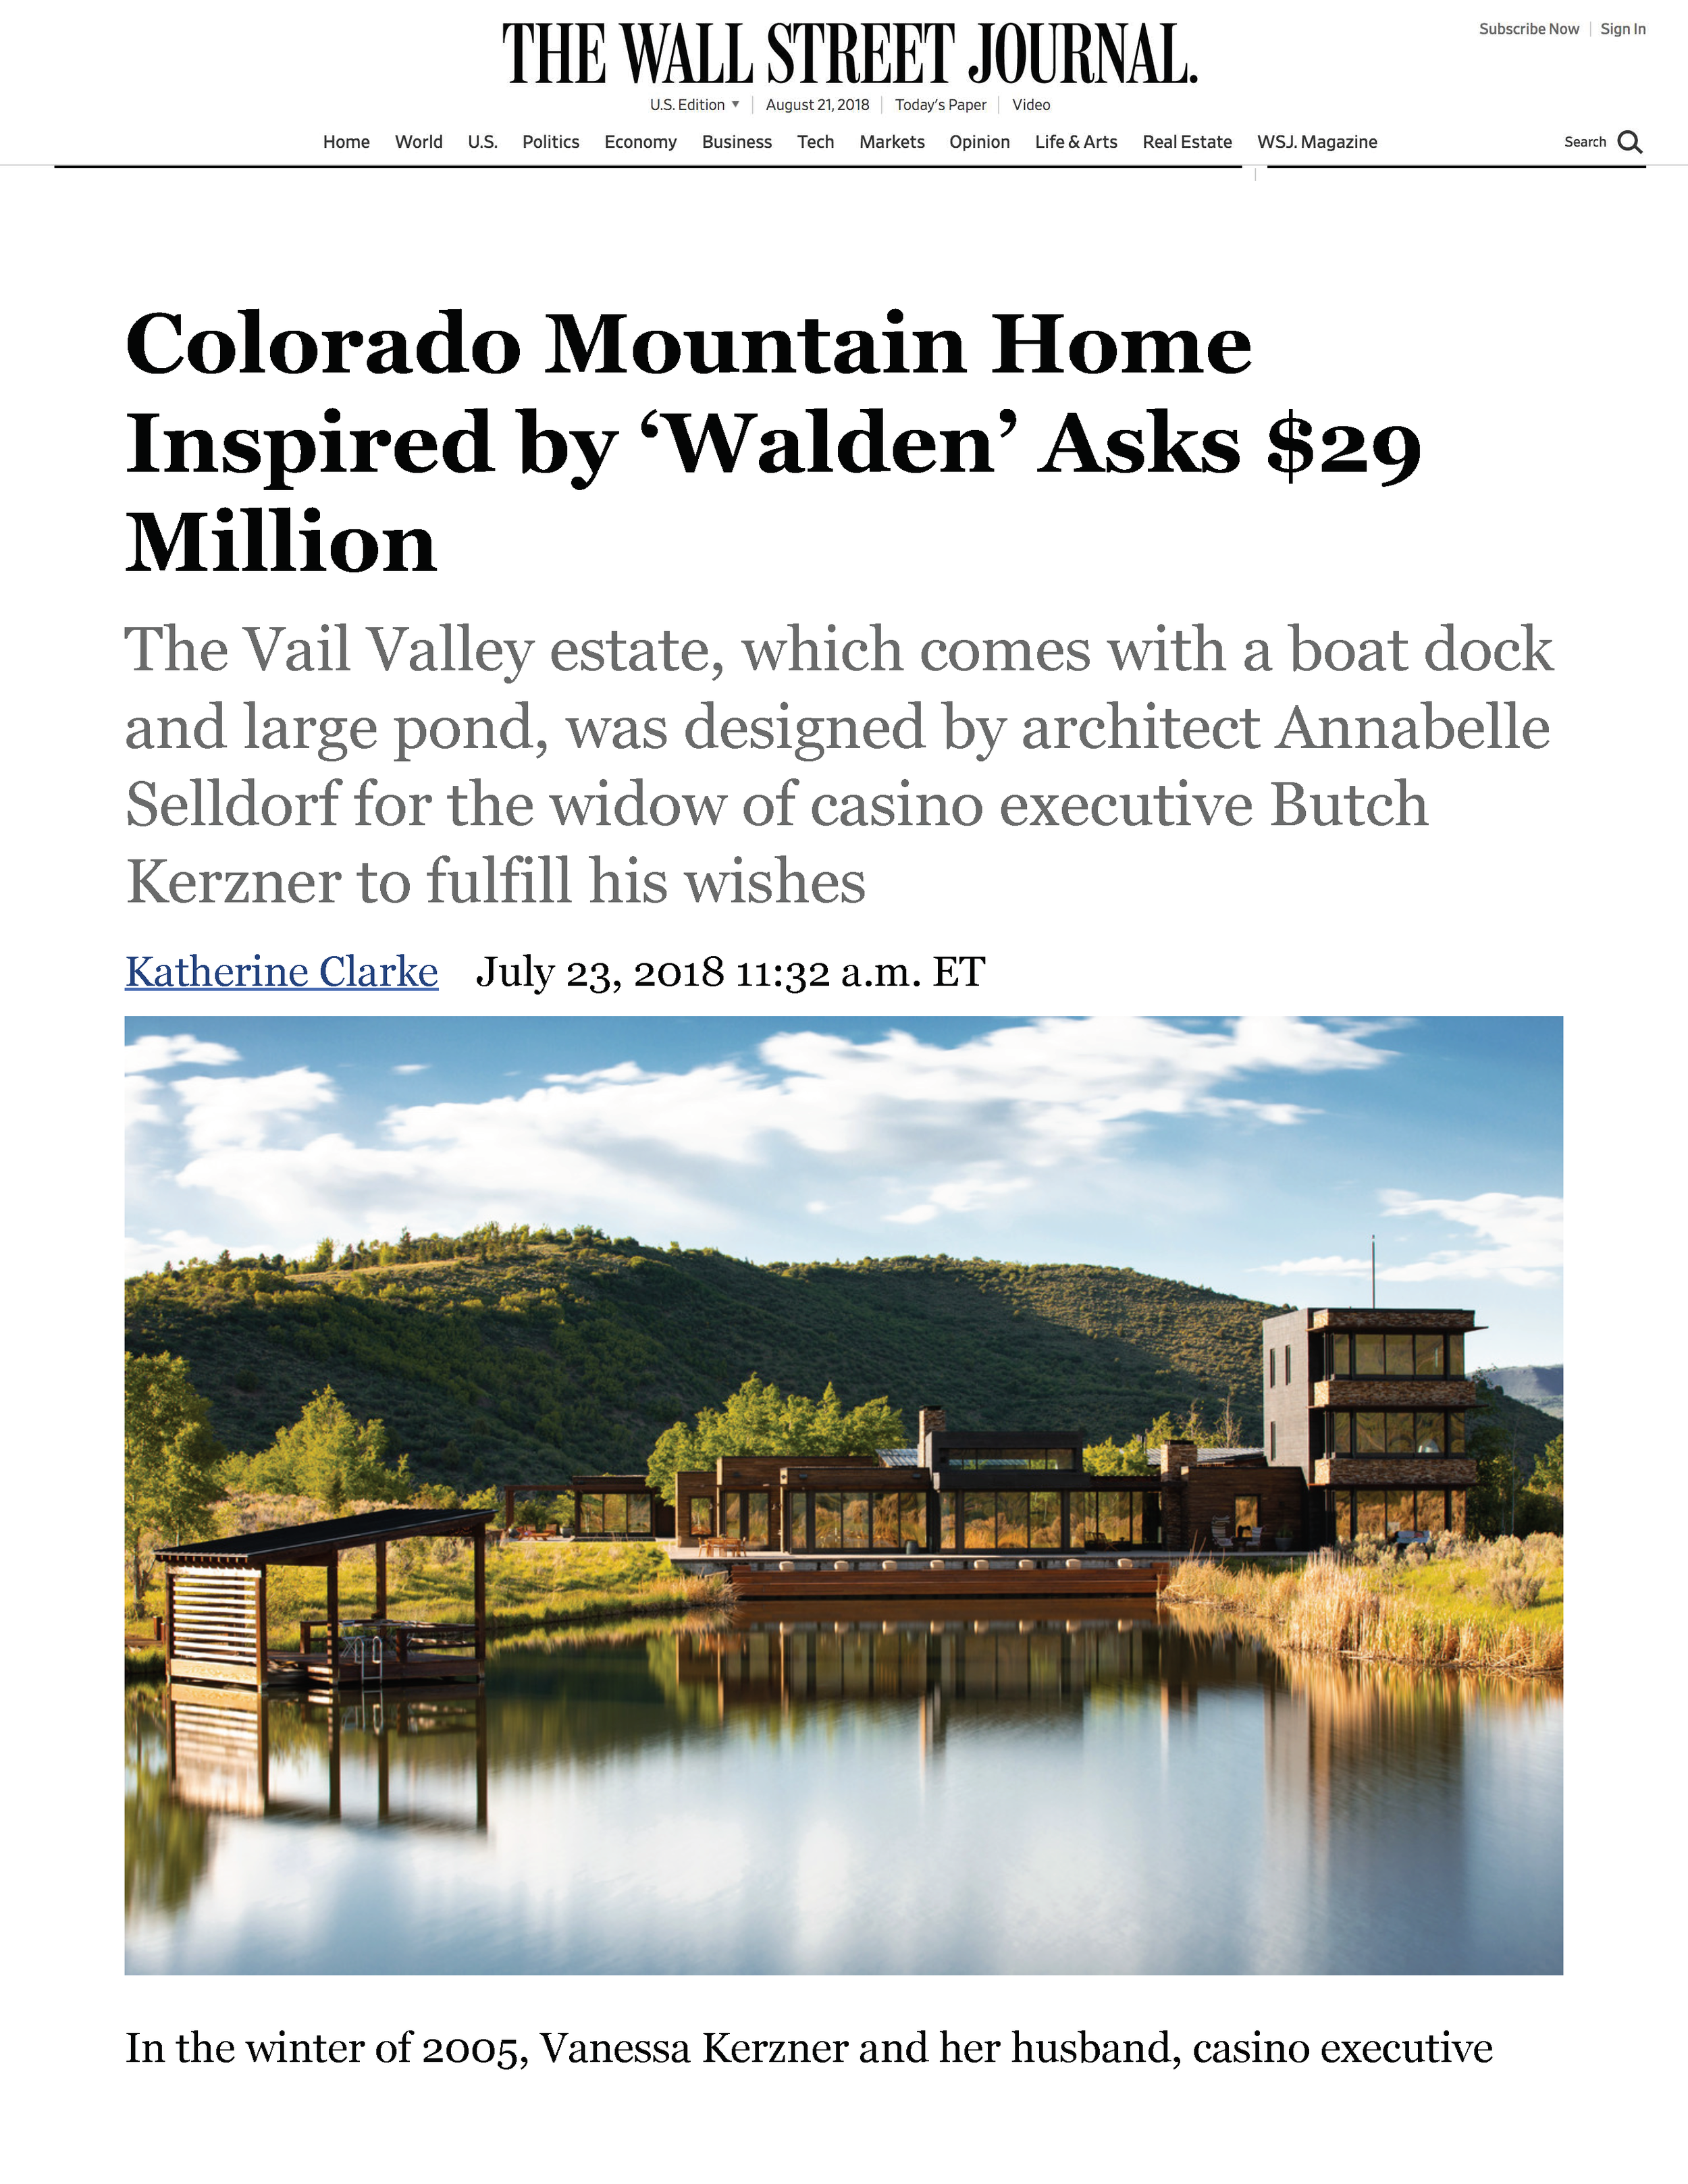 Iconic Homes_Colorado Mountain Home Inspired by 'Walden' Asks $29 Million